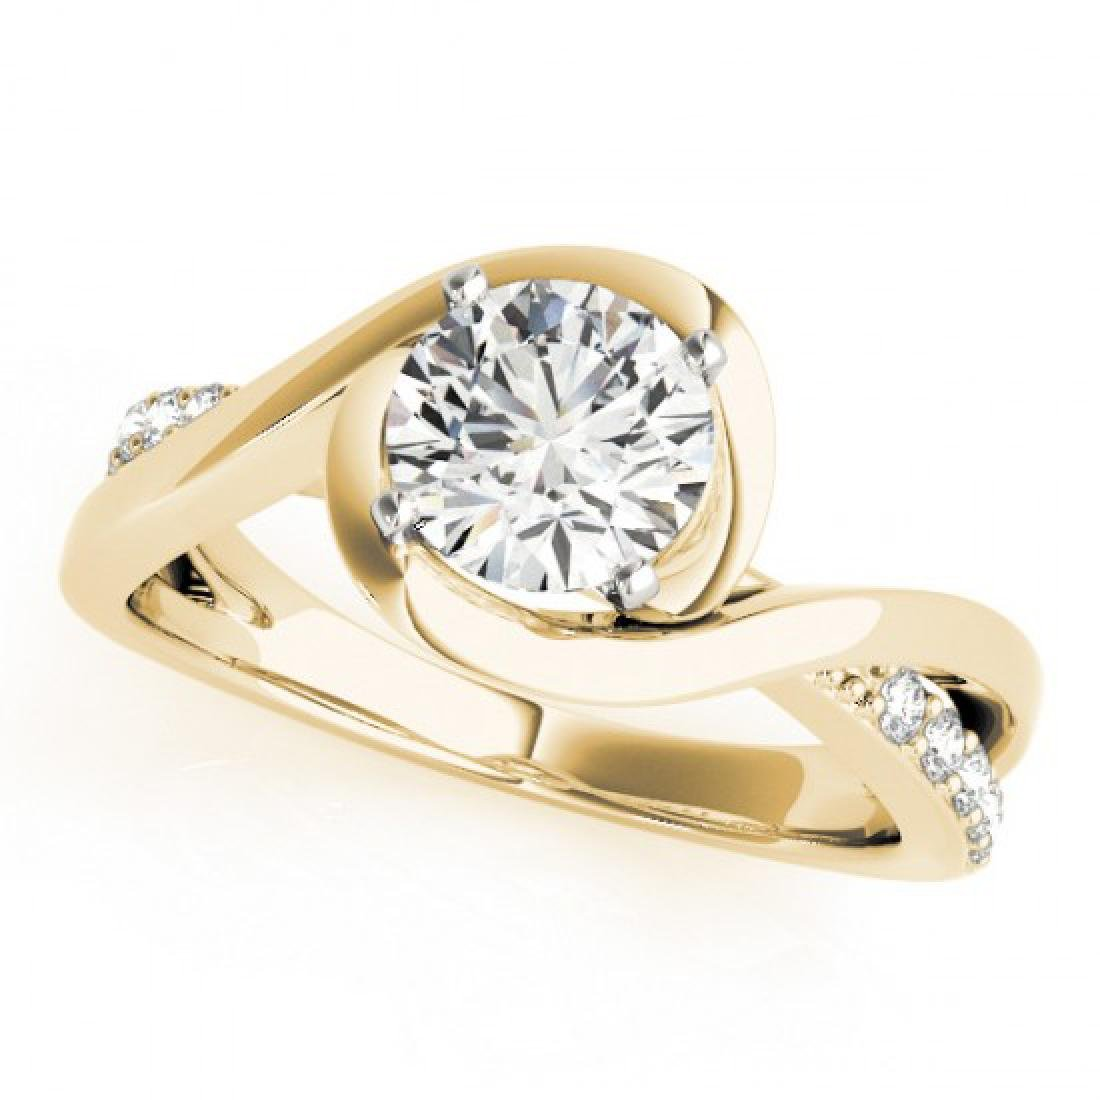 0.9 CTW Certified VS/SI Diamond Solitaire Ring 14K - 2